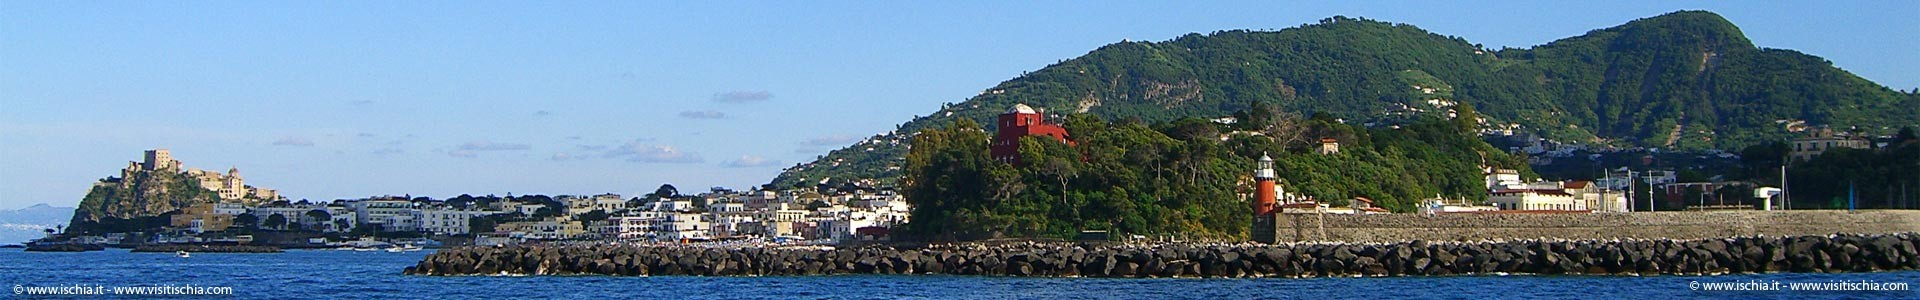 Ischia from the seaNavigating to Ischia is the first pleasant experience that welcomes the traveler on our island.